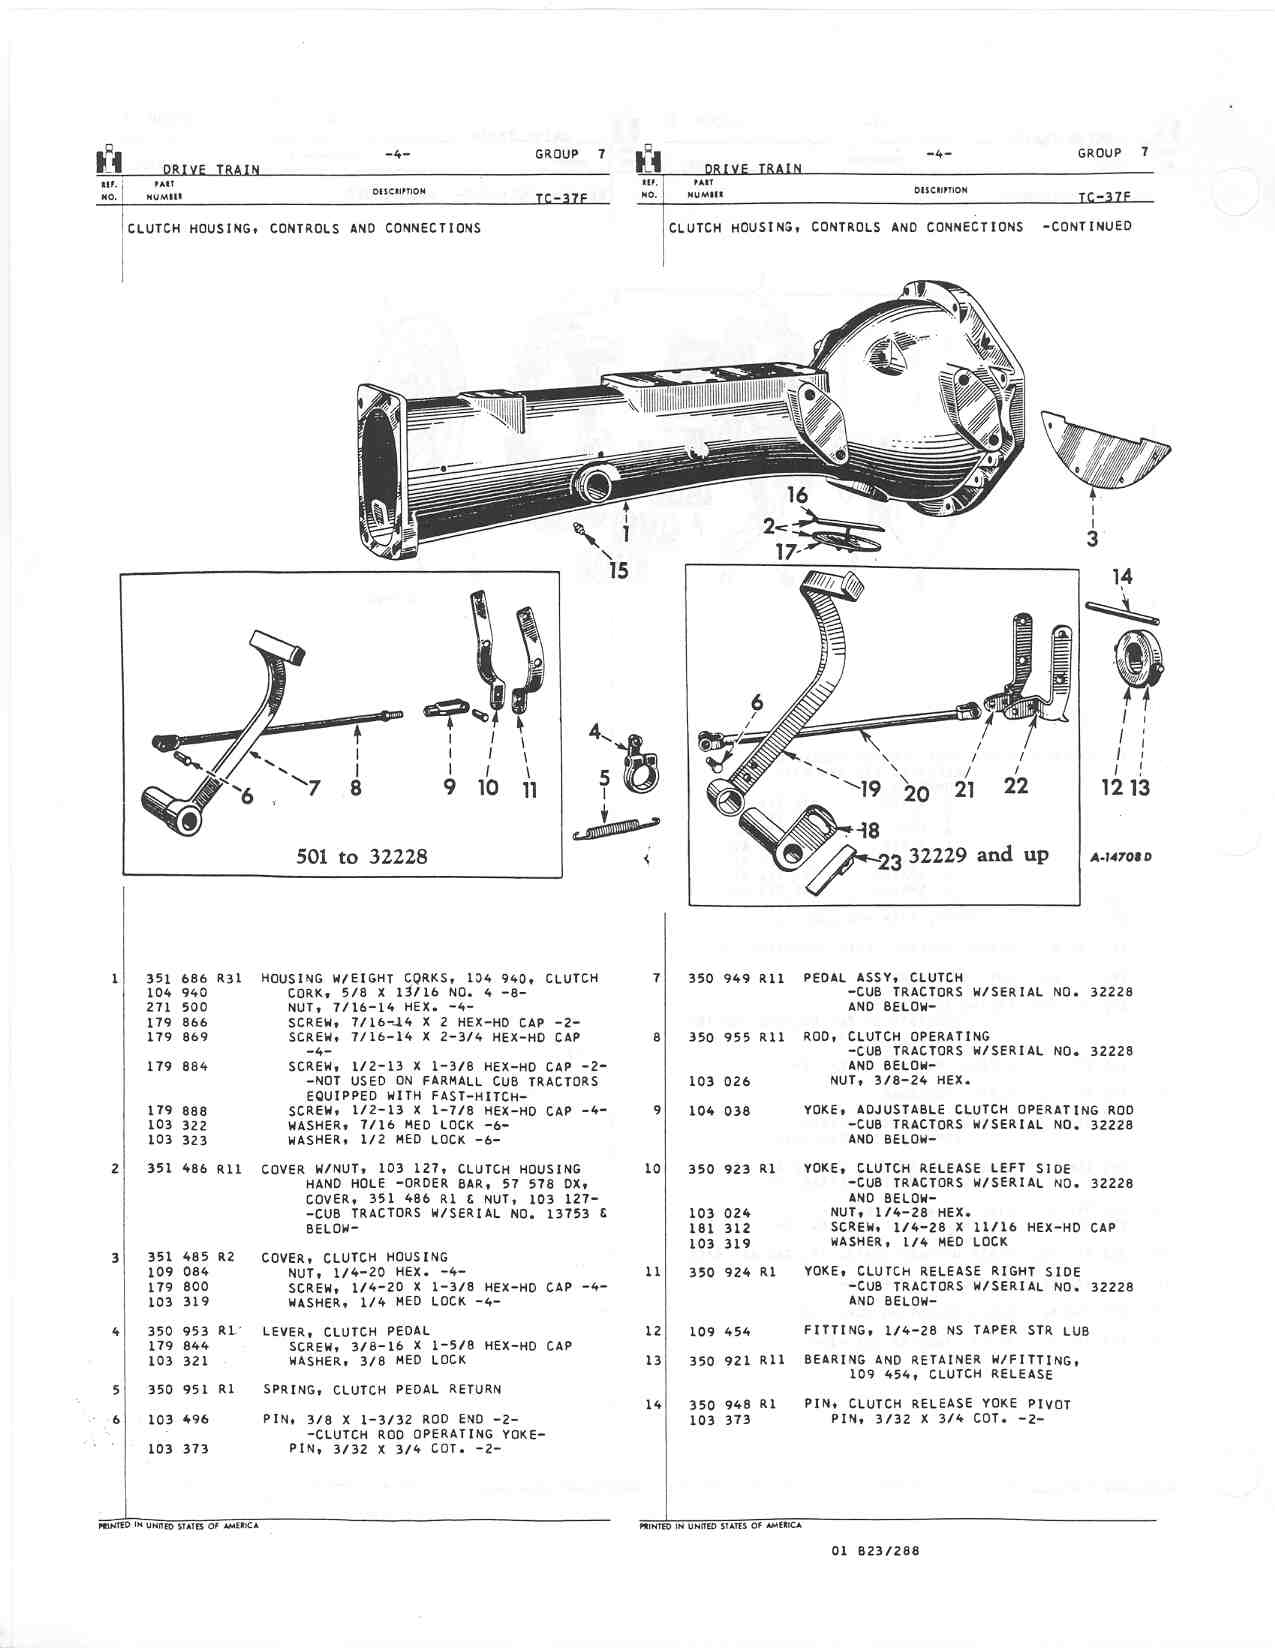 Here Are Pages From The Cub Parts Manual Showing Clutch